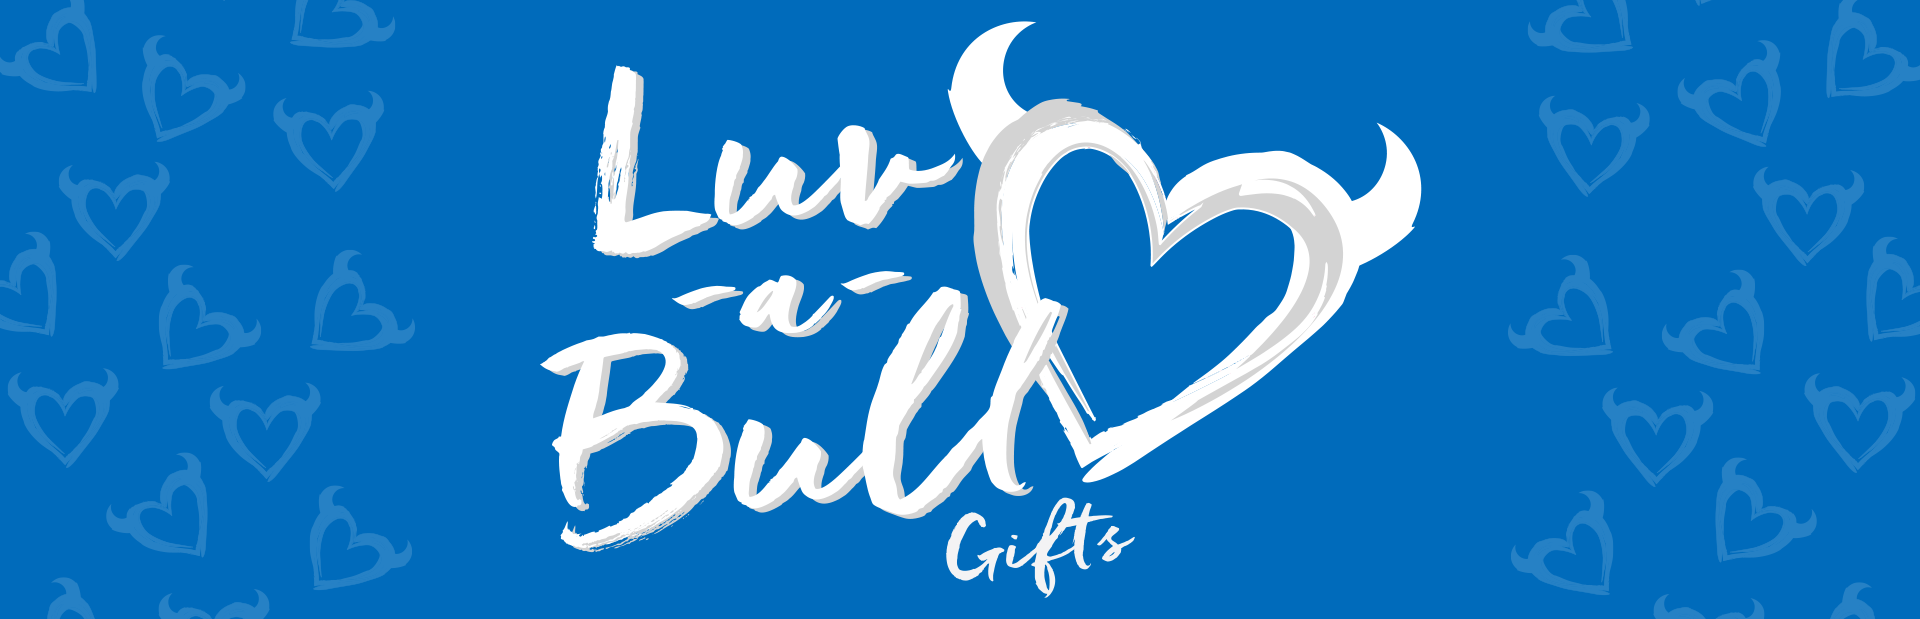 Luv-A-Bull Gifts